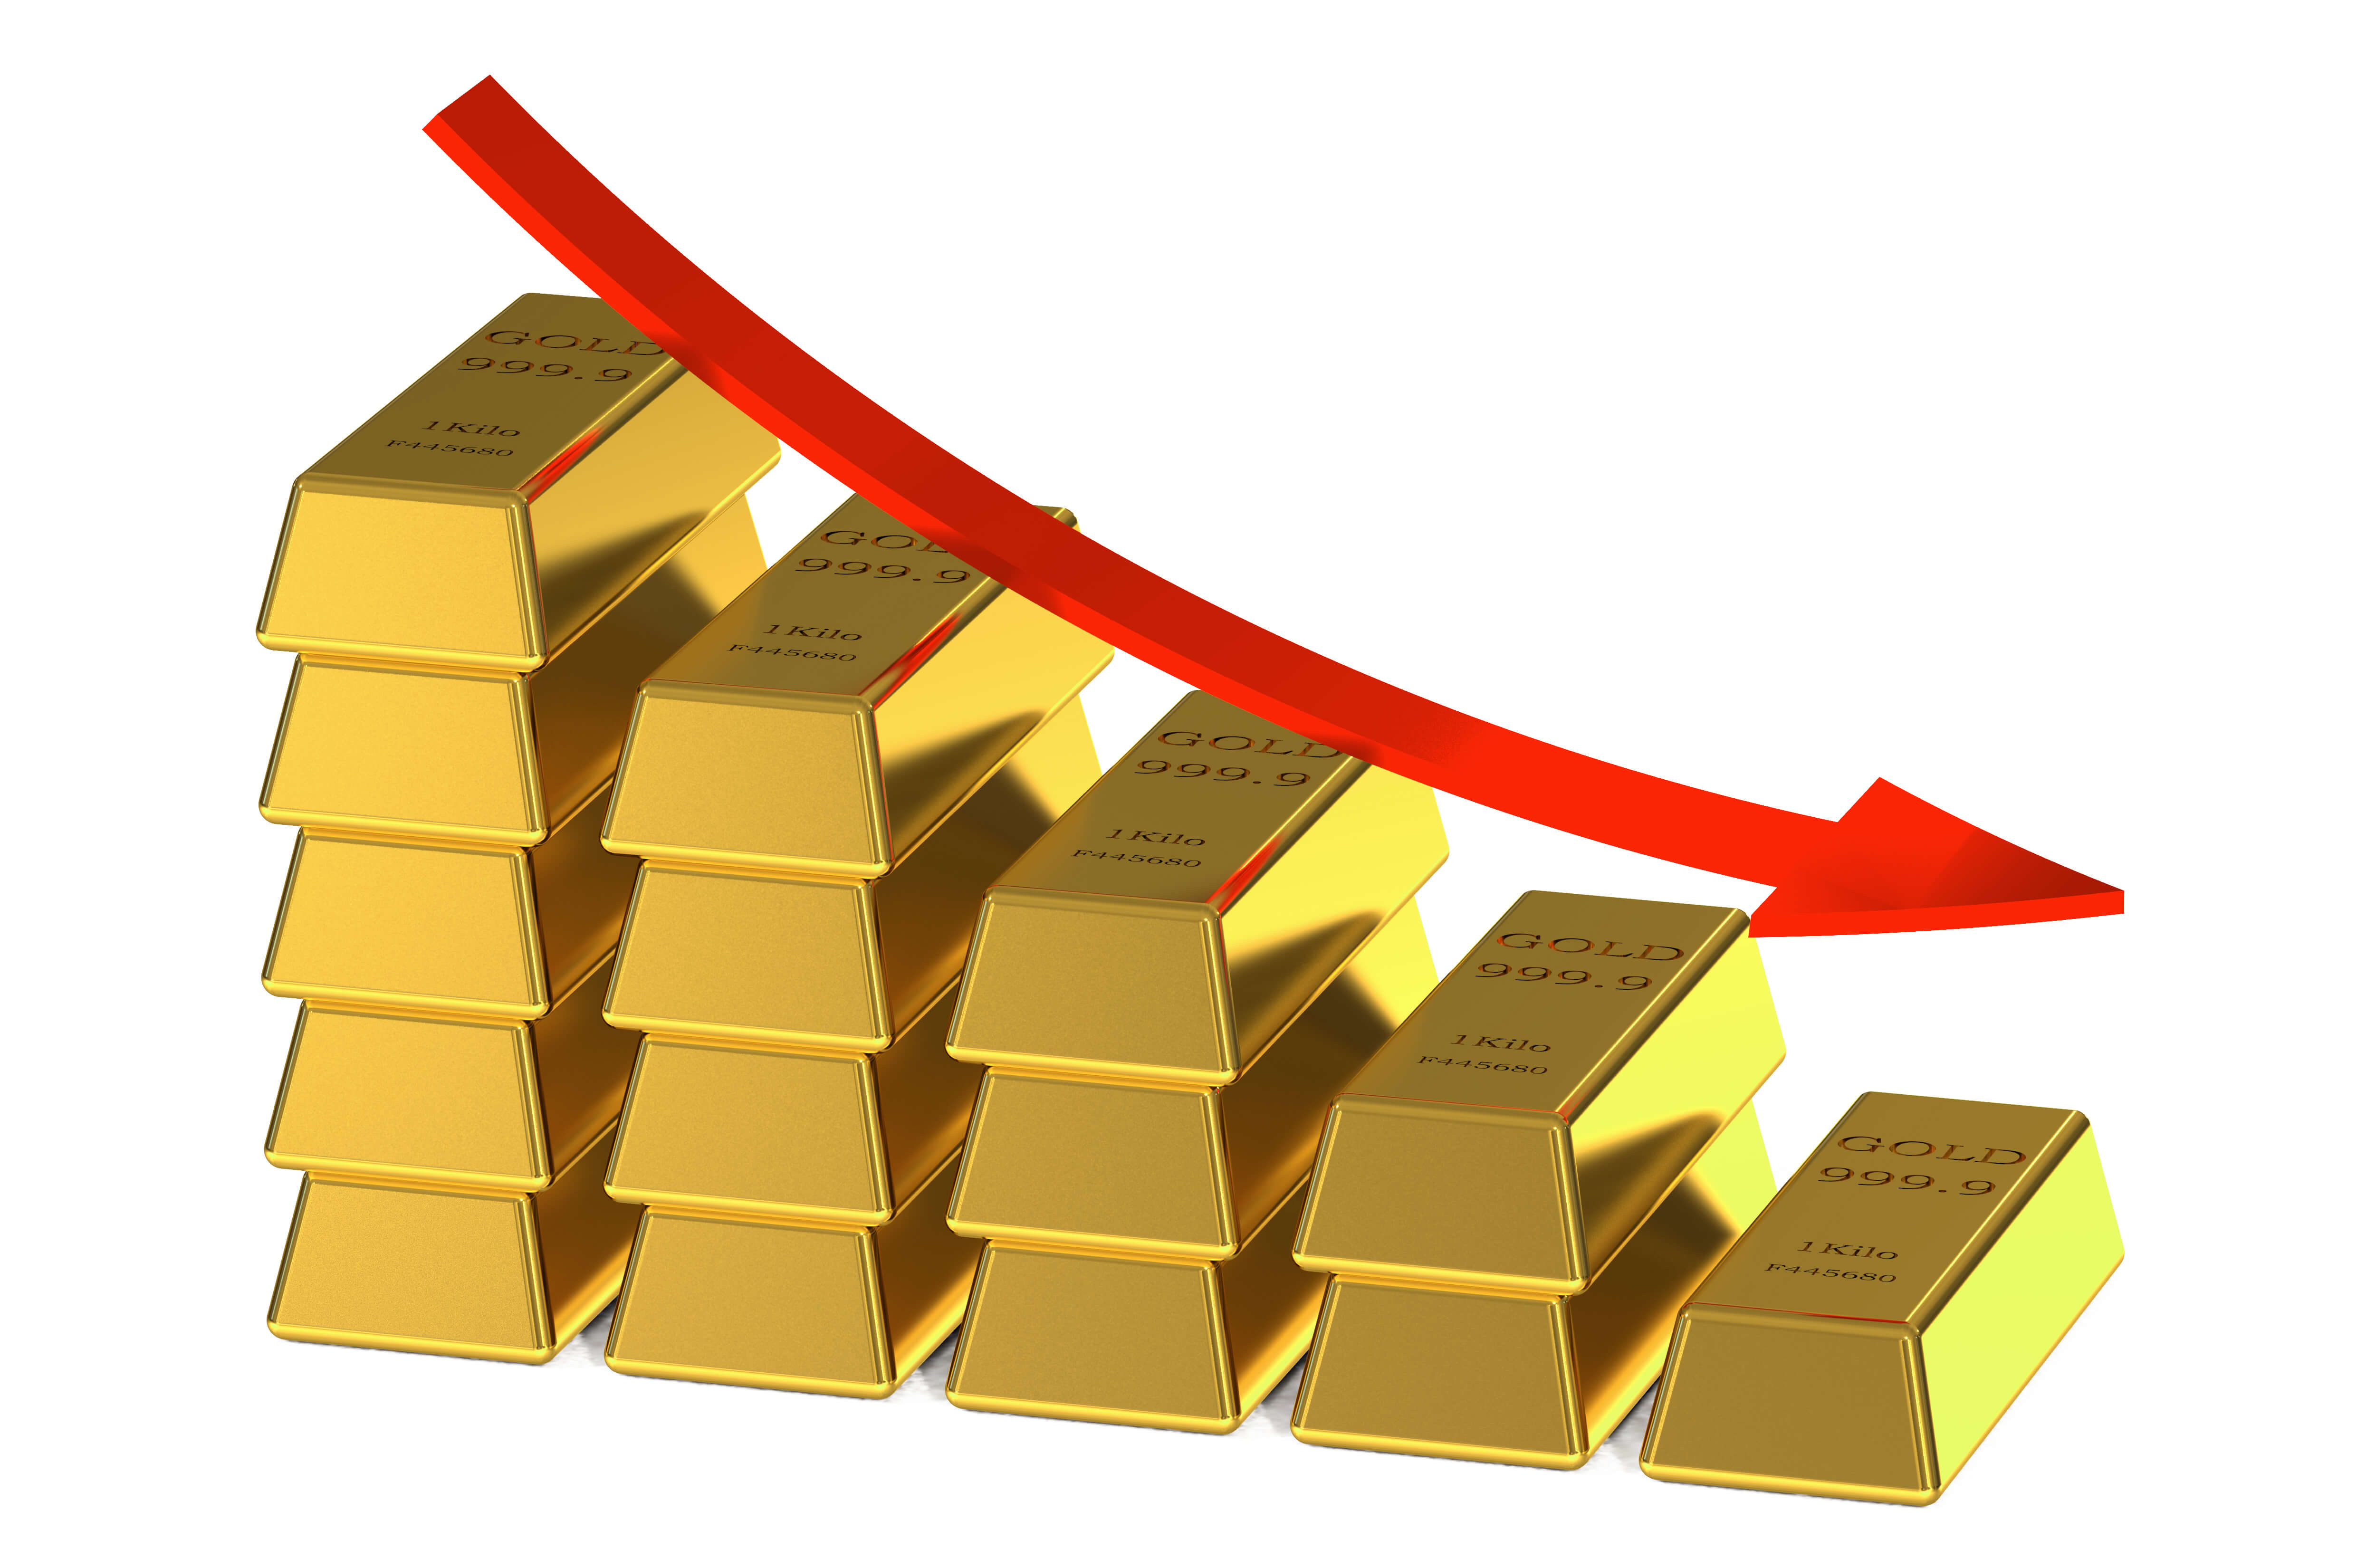 Spot price of gold fell after the U.S.-China agreement